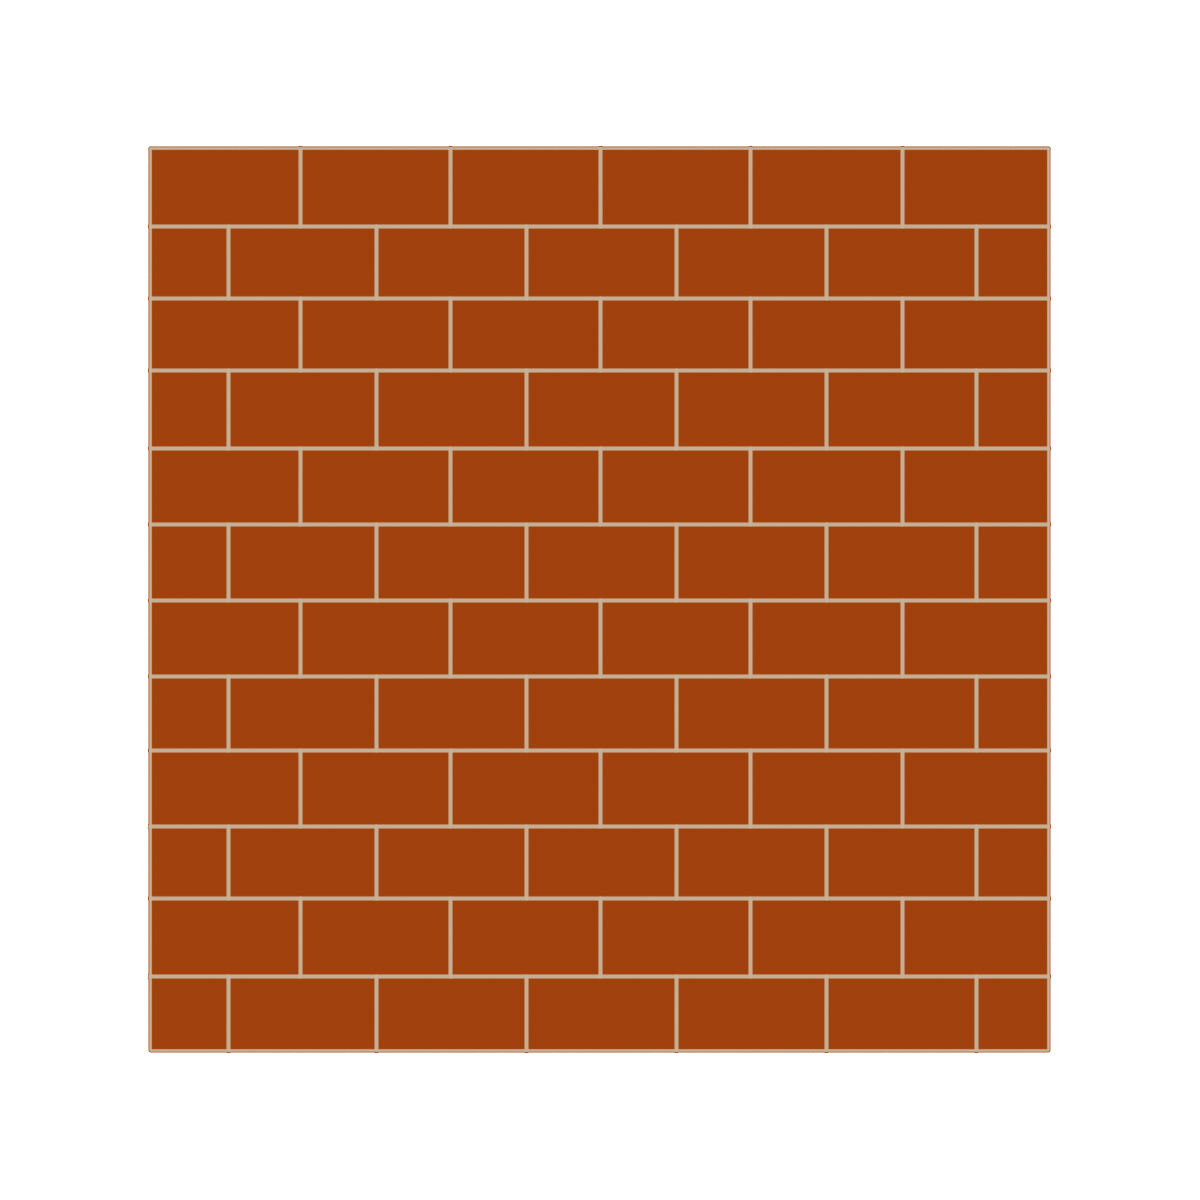 1200x1200 How To Draw Brick Wall